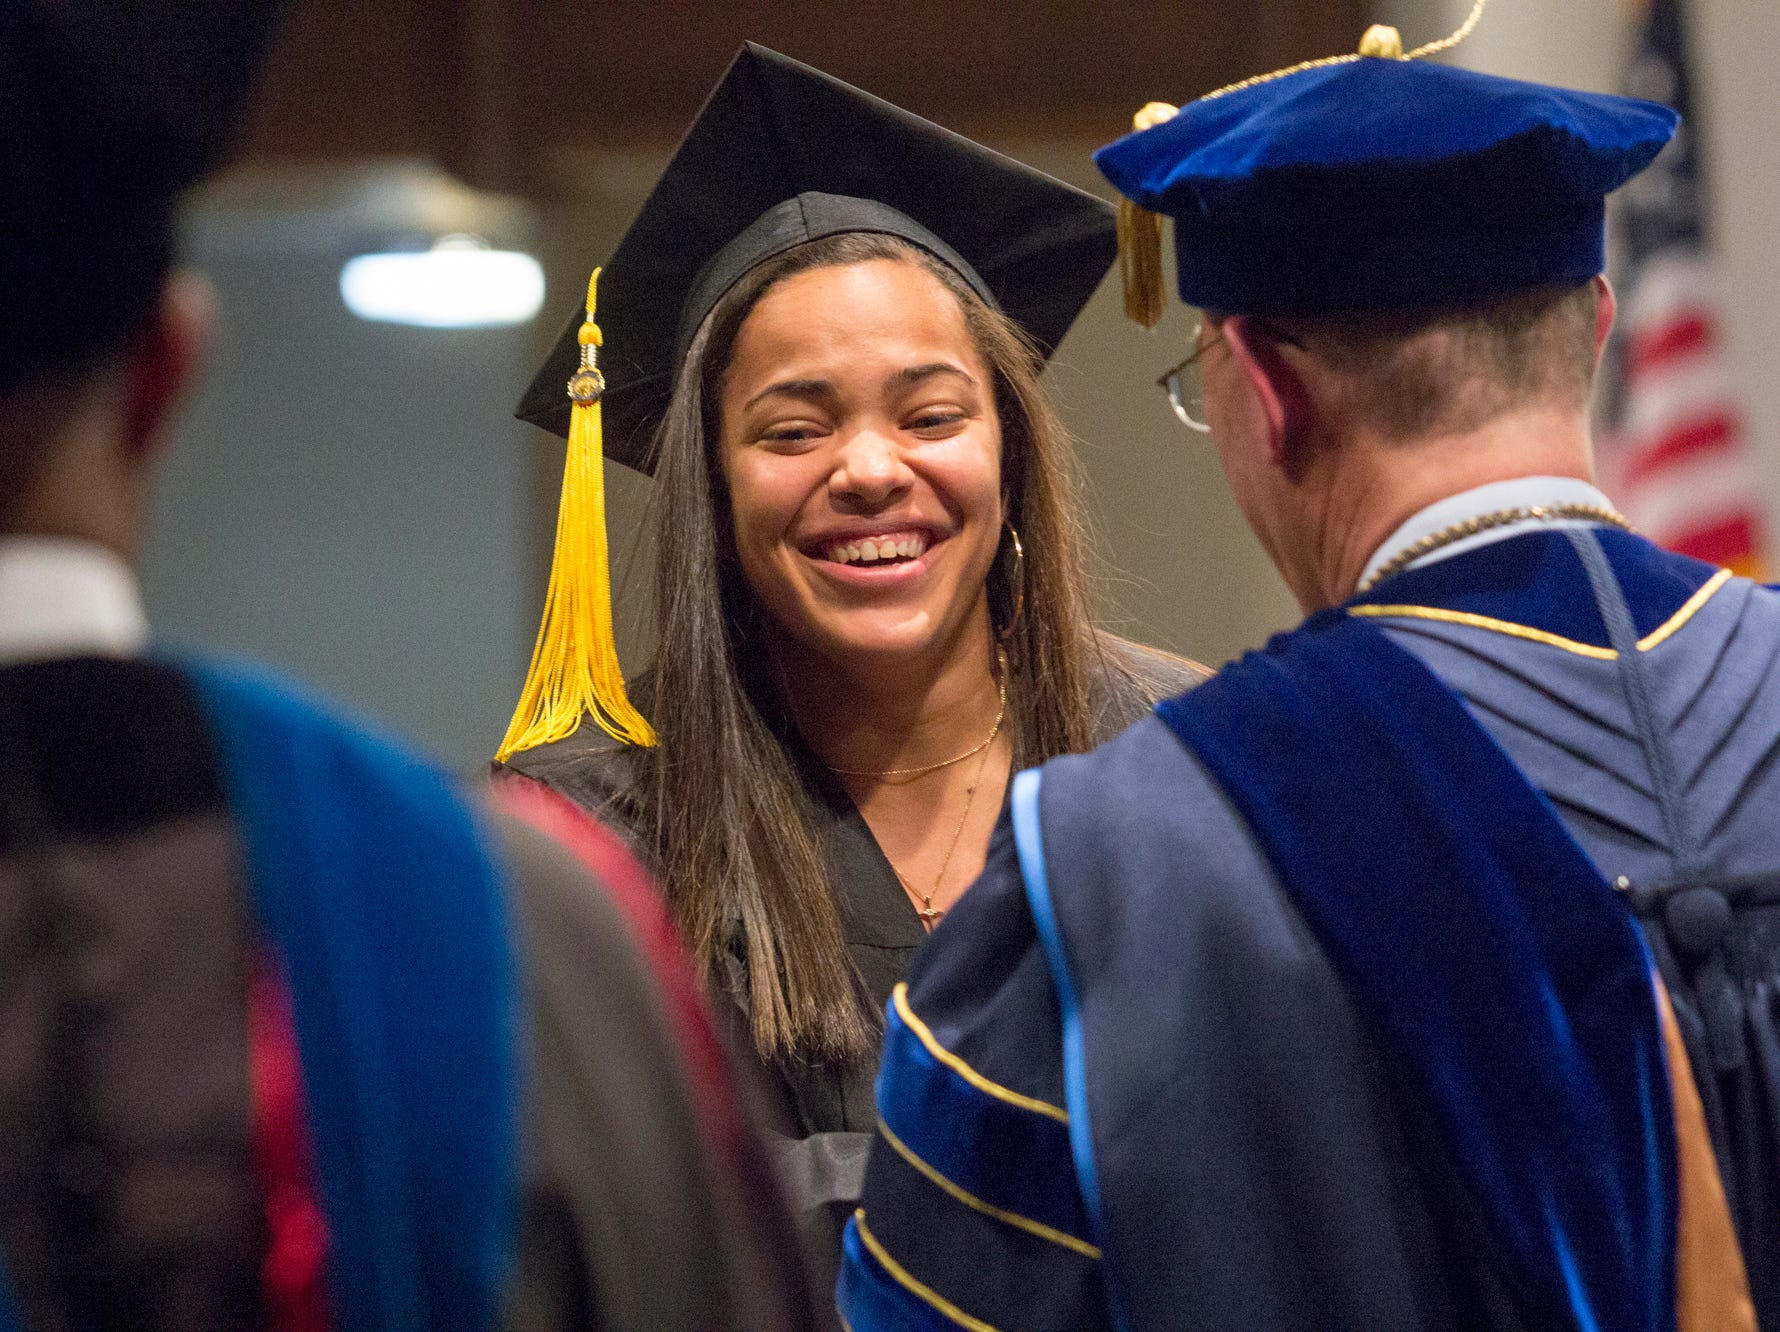 Moriah Johnson receives her diploma from President Tony Floyd. Mars Hill University conferred bachelor's degrees on 71 graduates on Dec. 14, 2018.